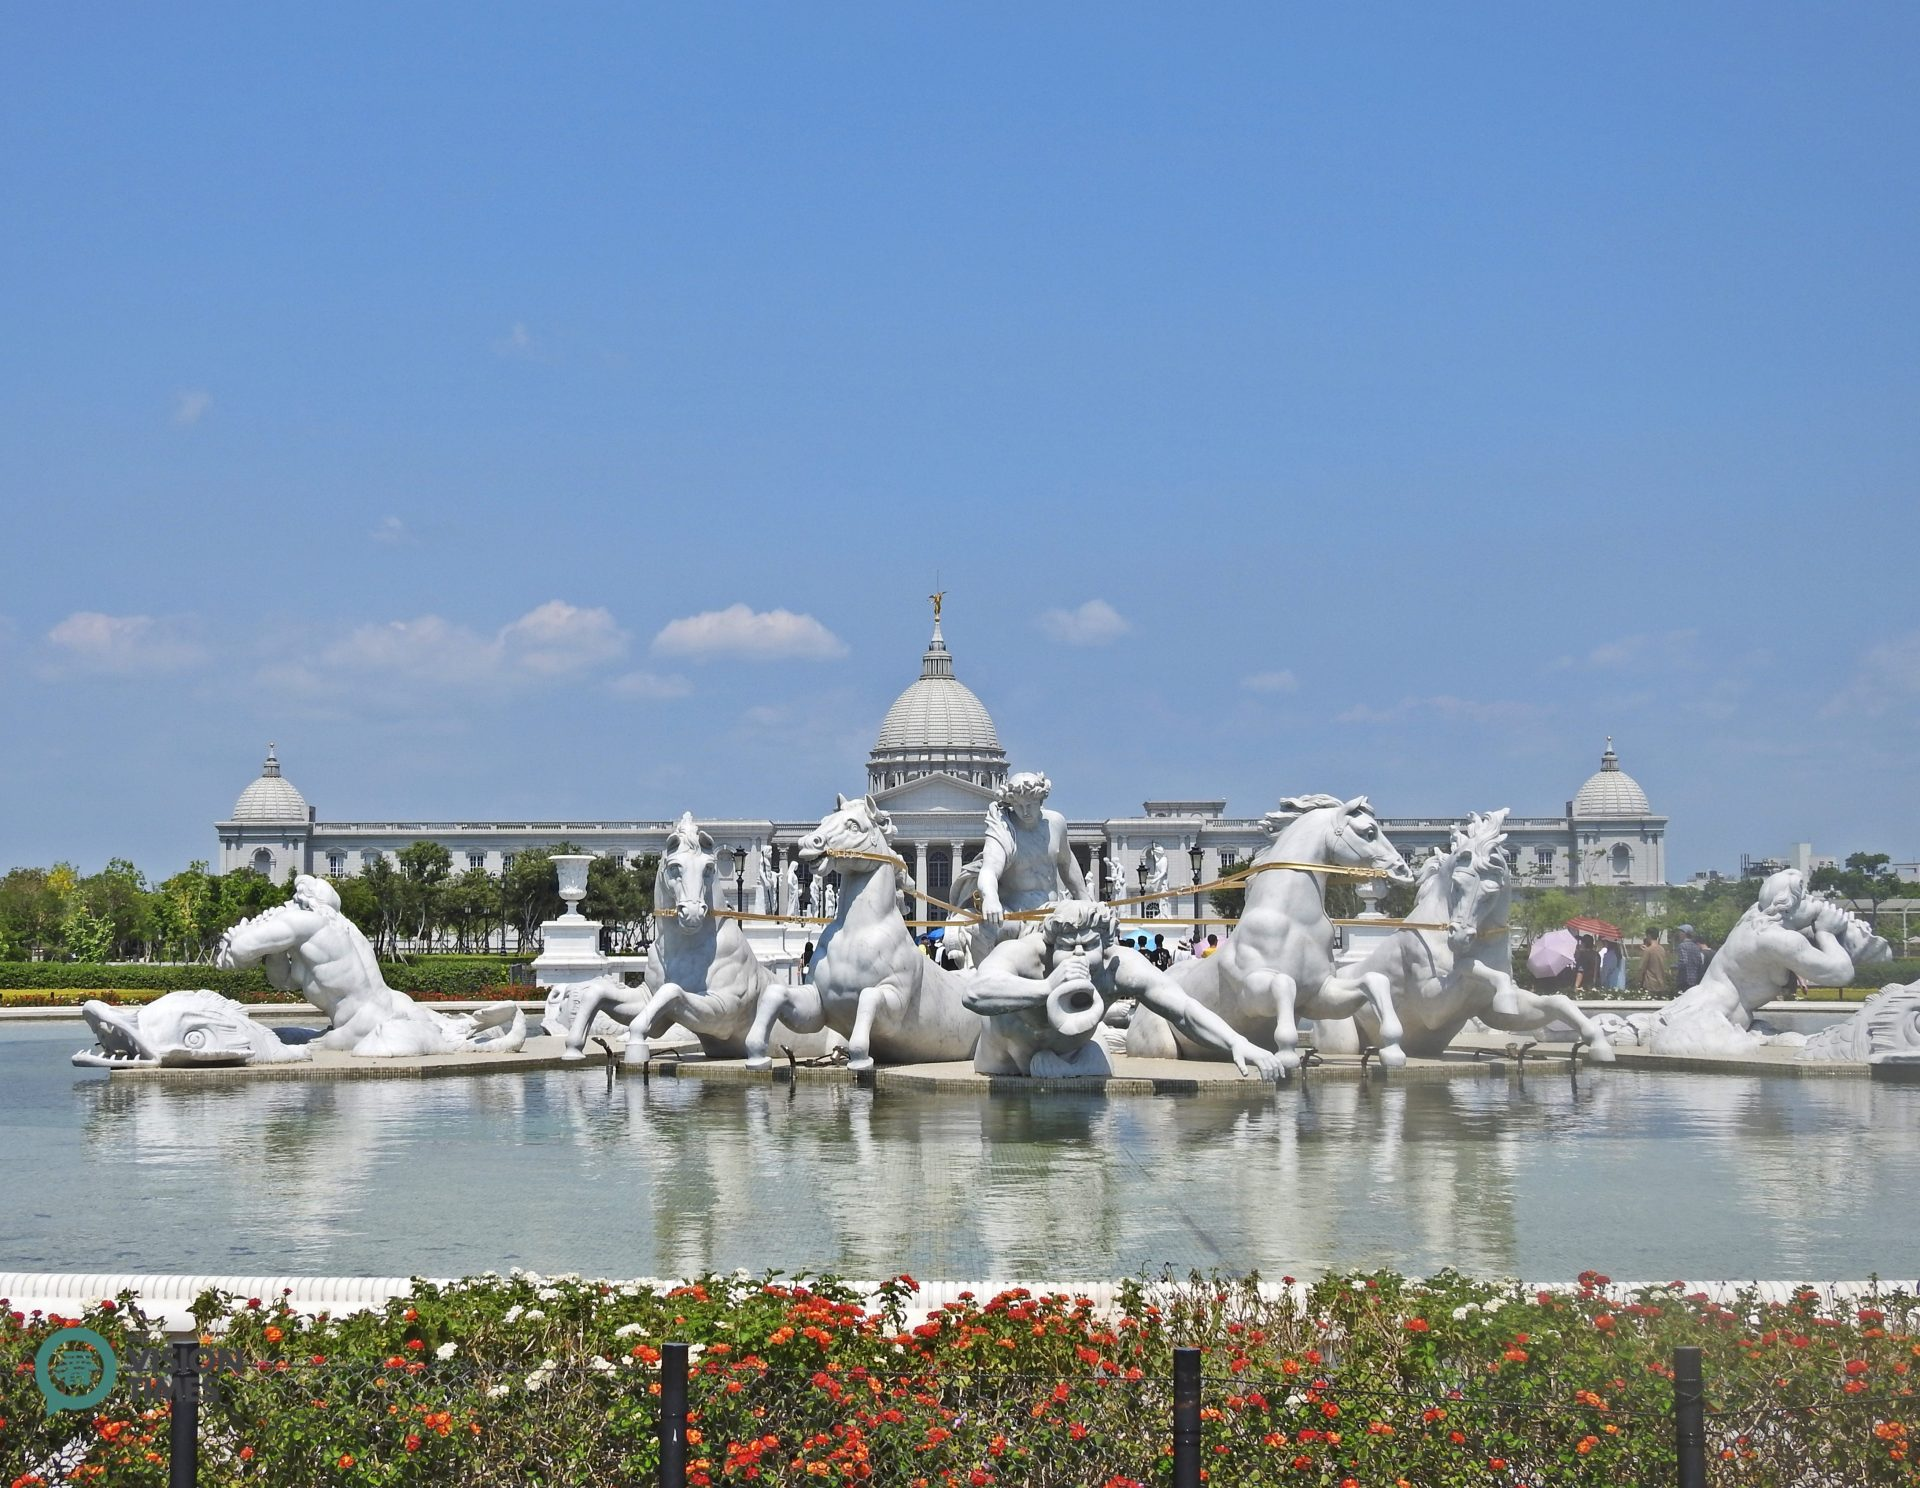 Chimei Museum's Fountain of Apollo is a replica of Le Bassin d'Apollon at the Palace of Versailles in France. (Image: Billy Shyu / Vision Times)